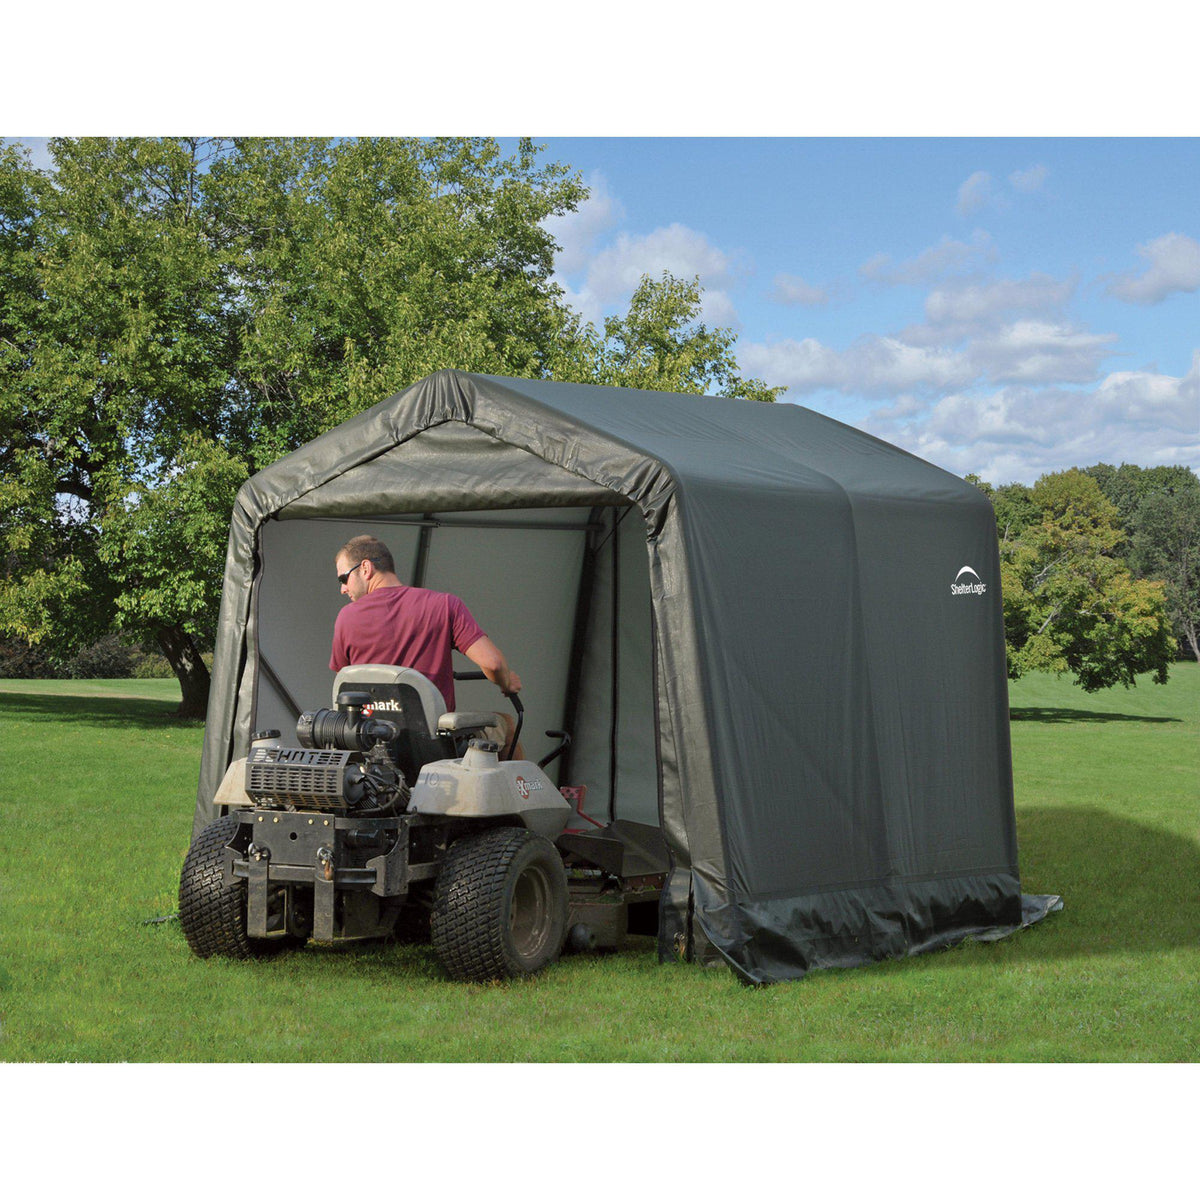 ShelterLogic 8'x12'x8' Peak Style Shelter in Green